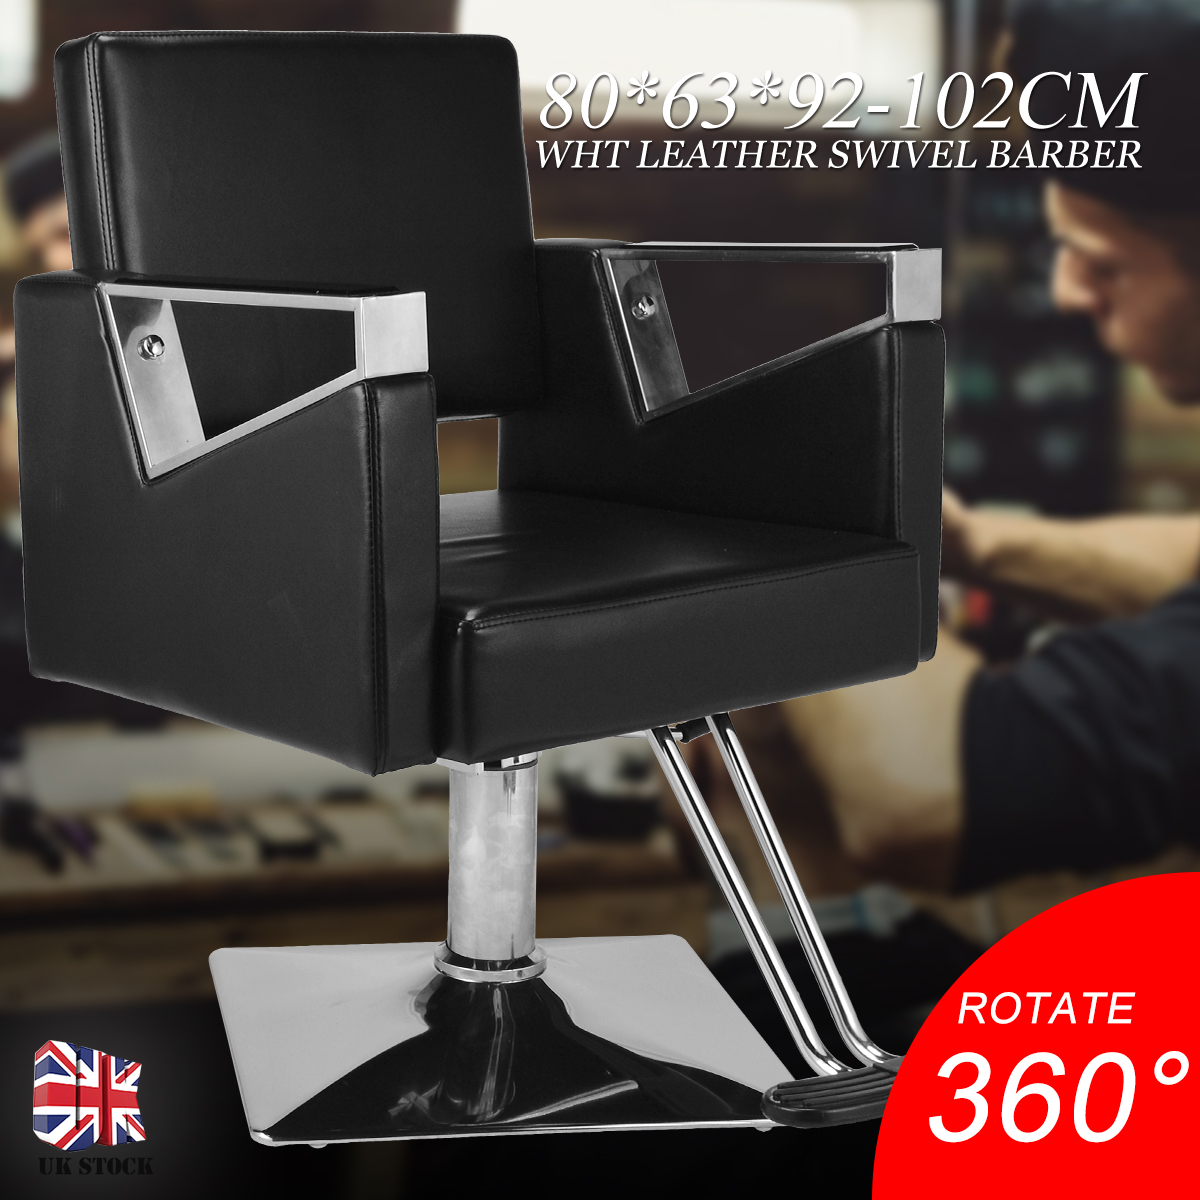 Black Hairdressing Swivel Chair Adjustable Seat PU Leather Chair For Salon Barber Beauty BarberShop Hair Cut Chair Furniture